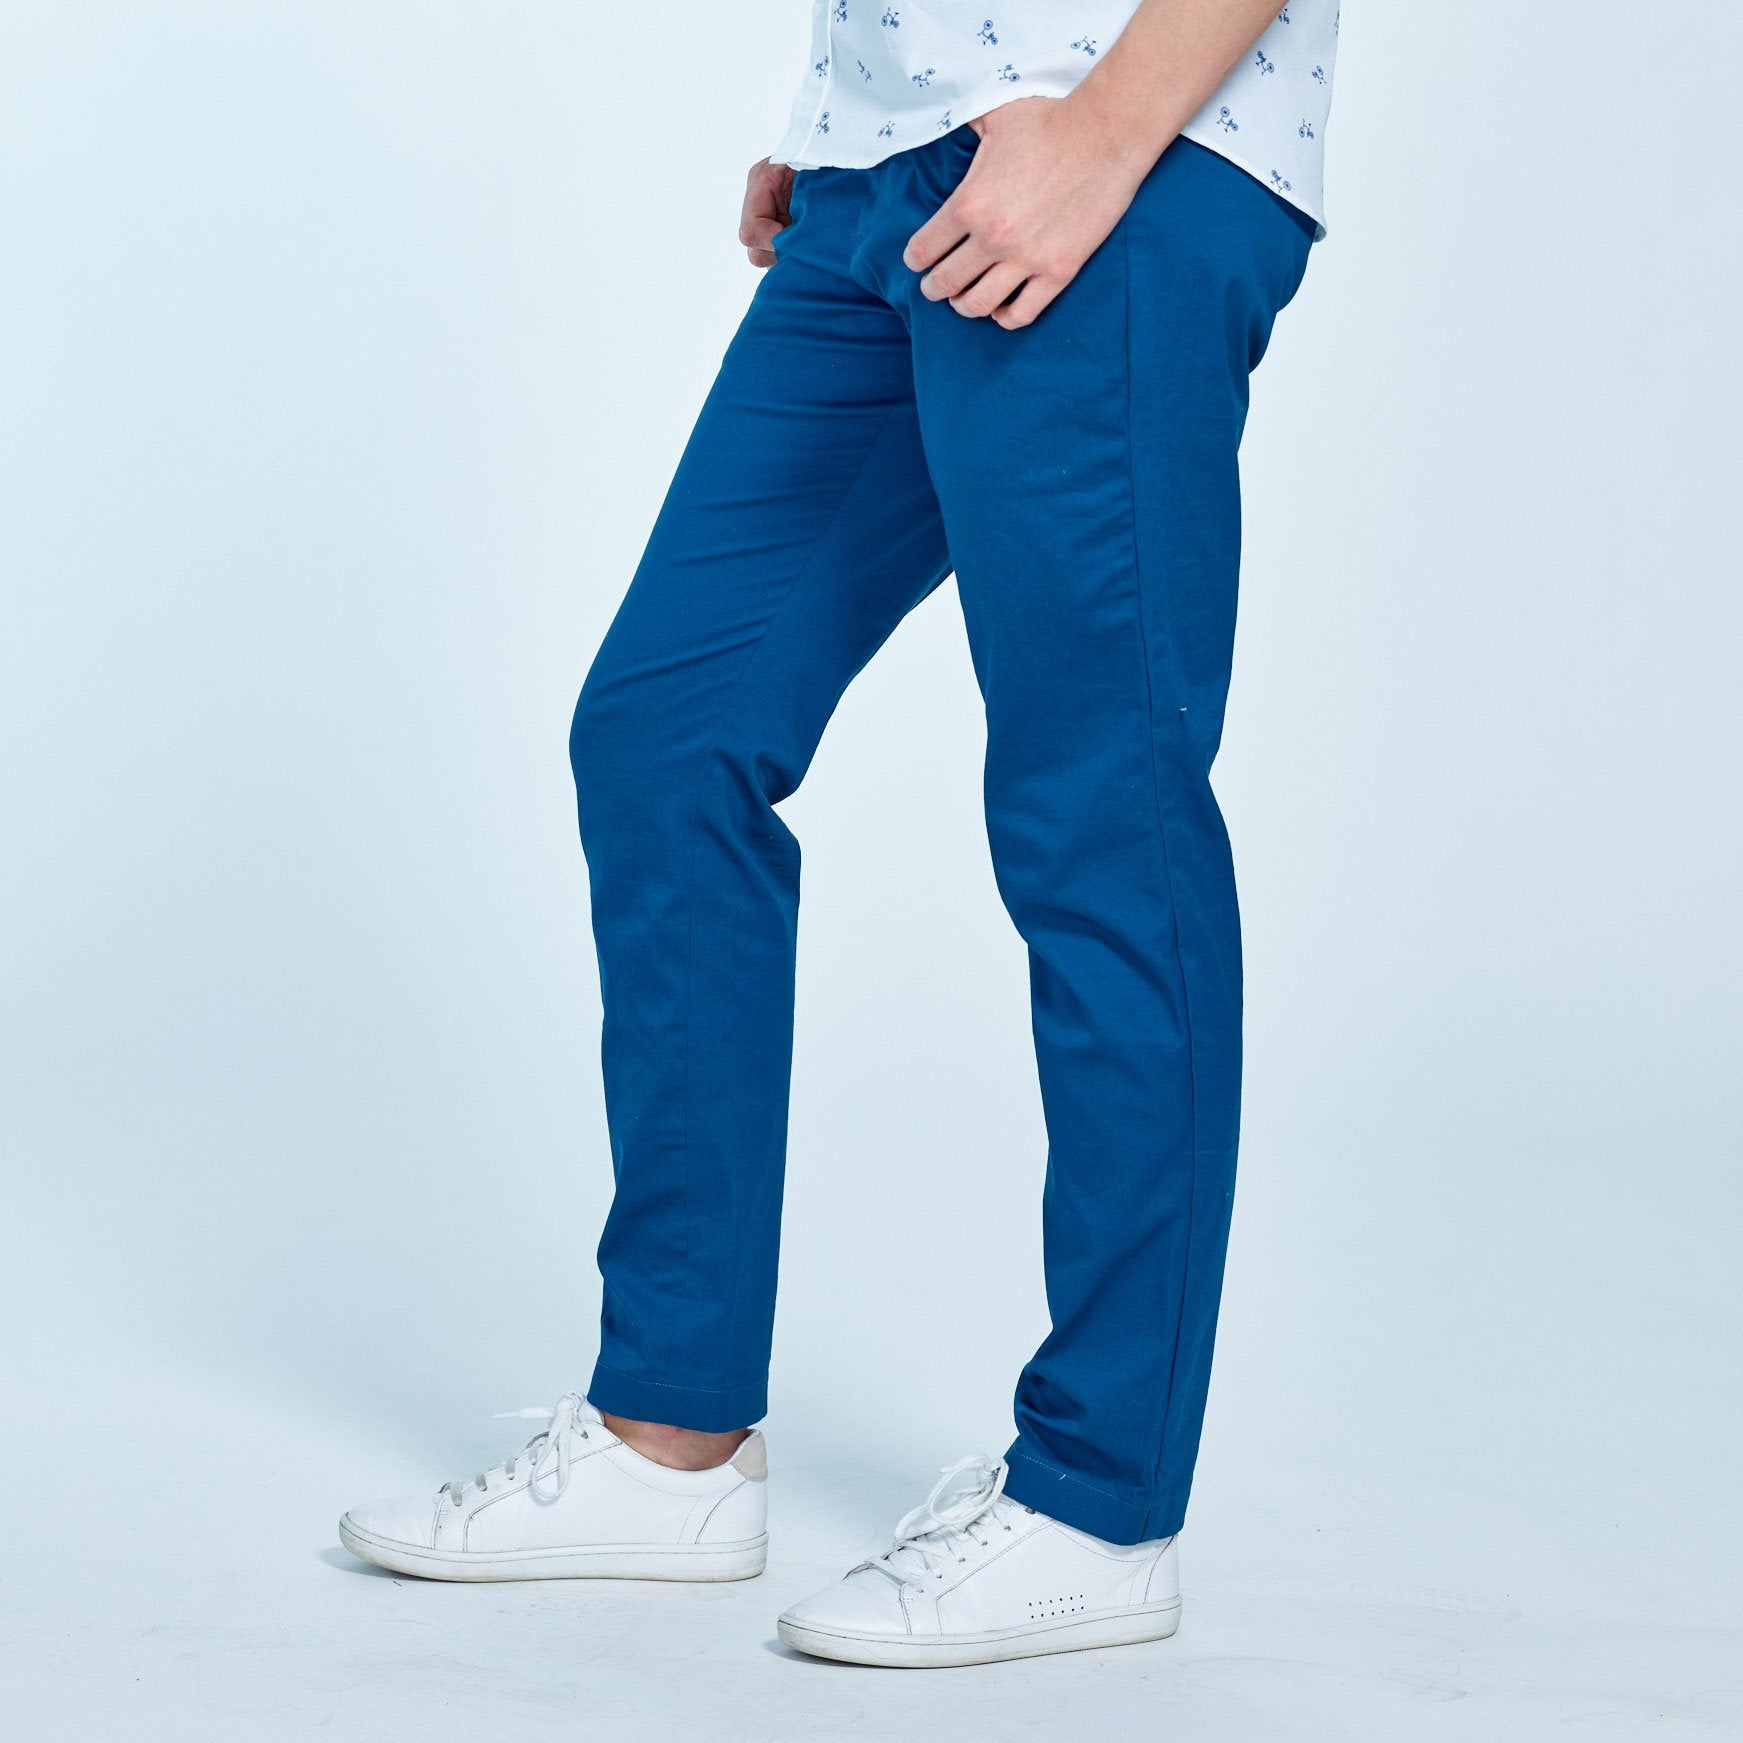 to wear - Wear to what with cobalt blue chinos video